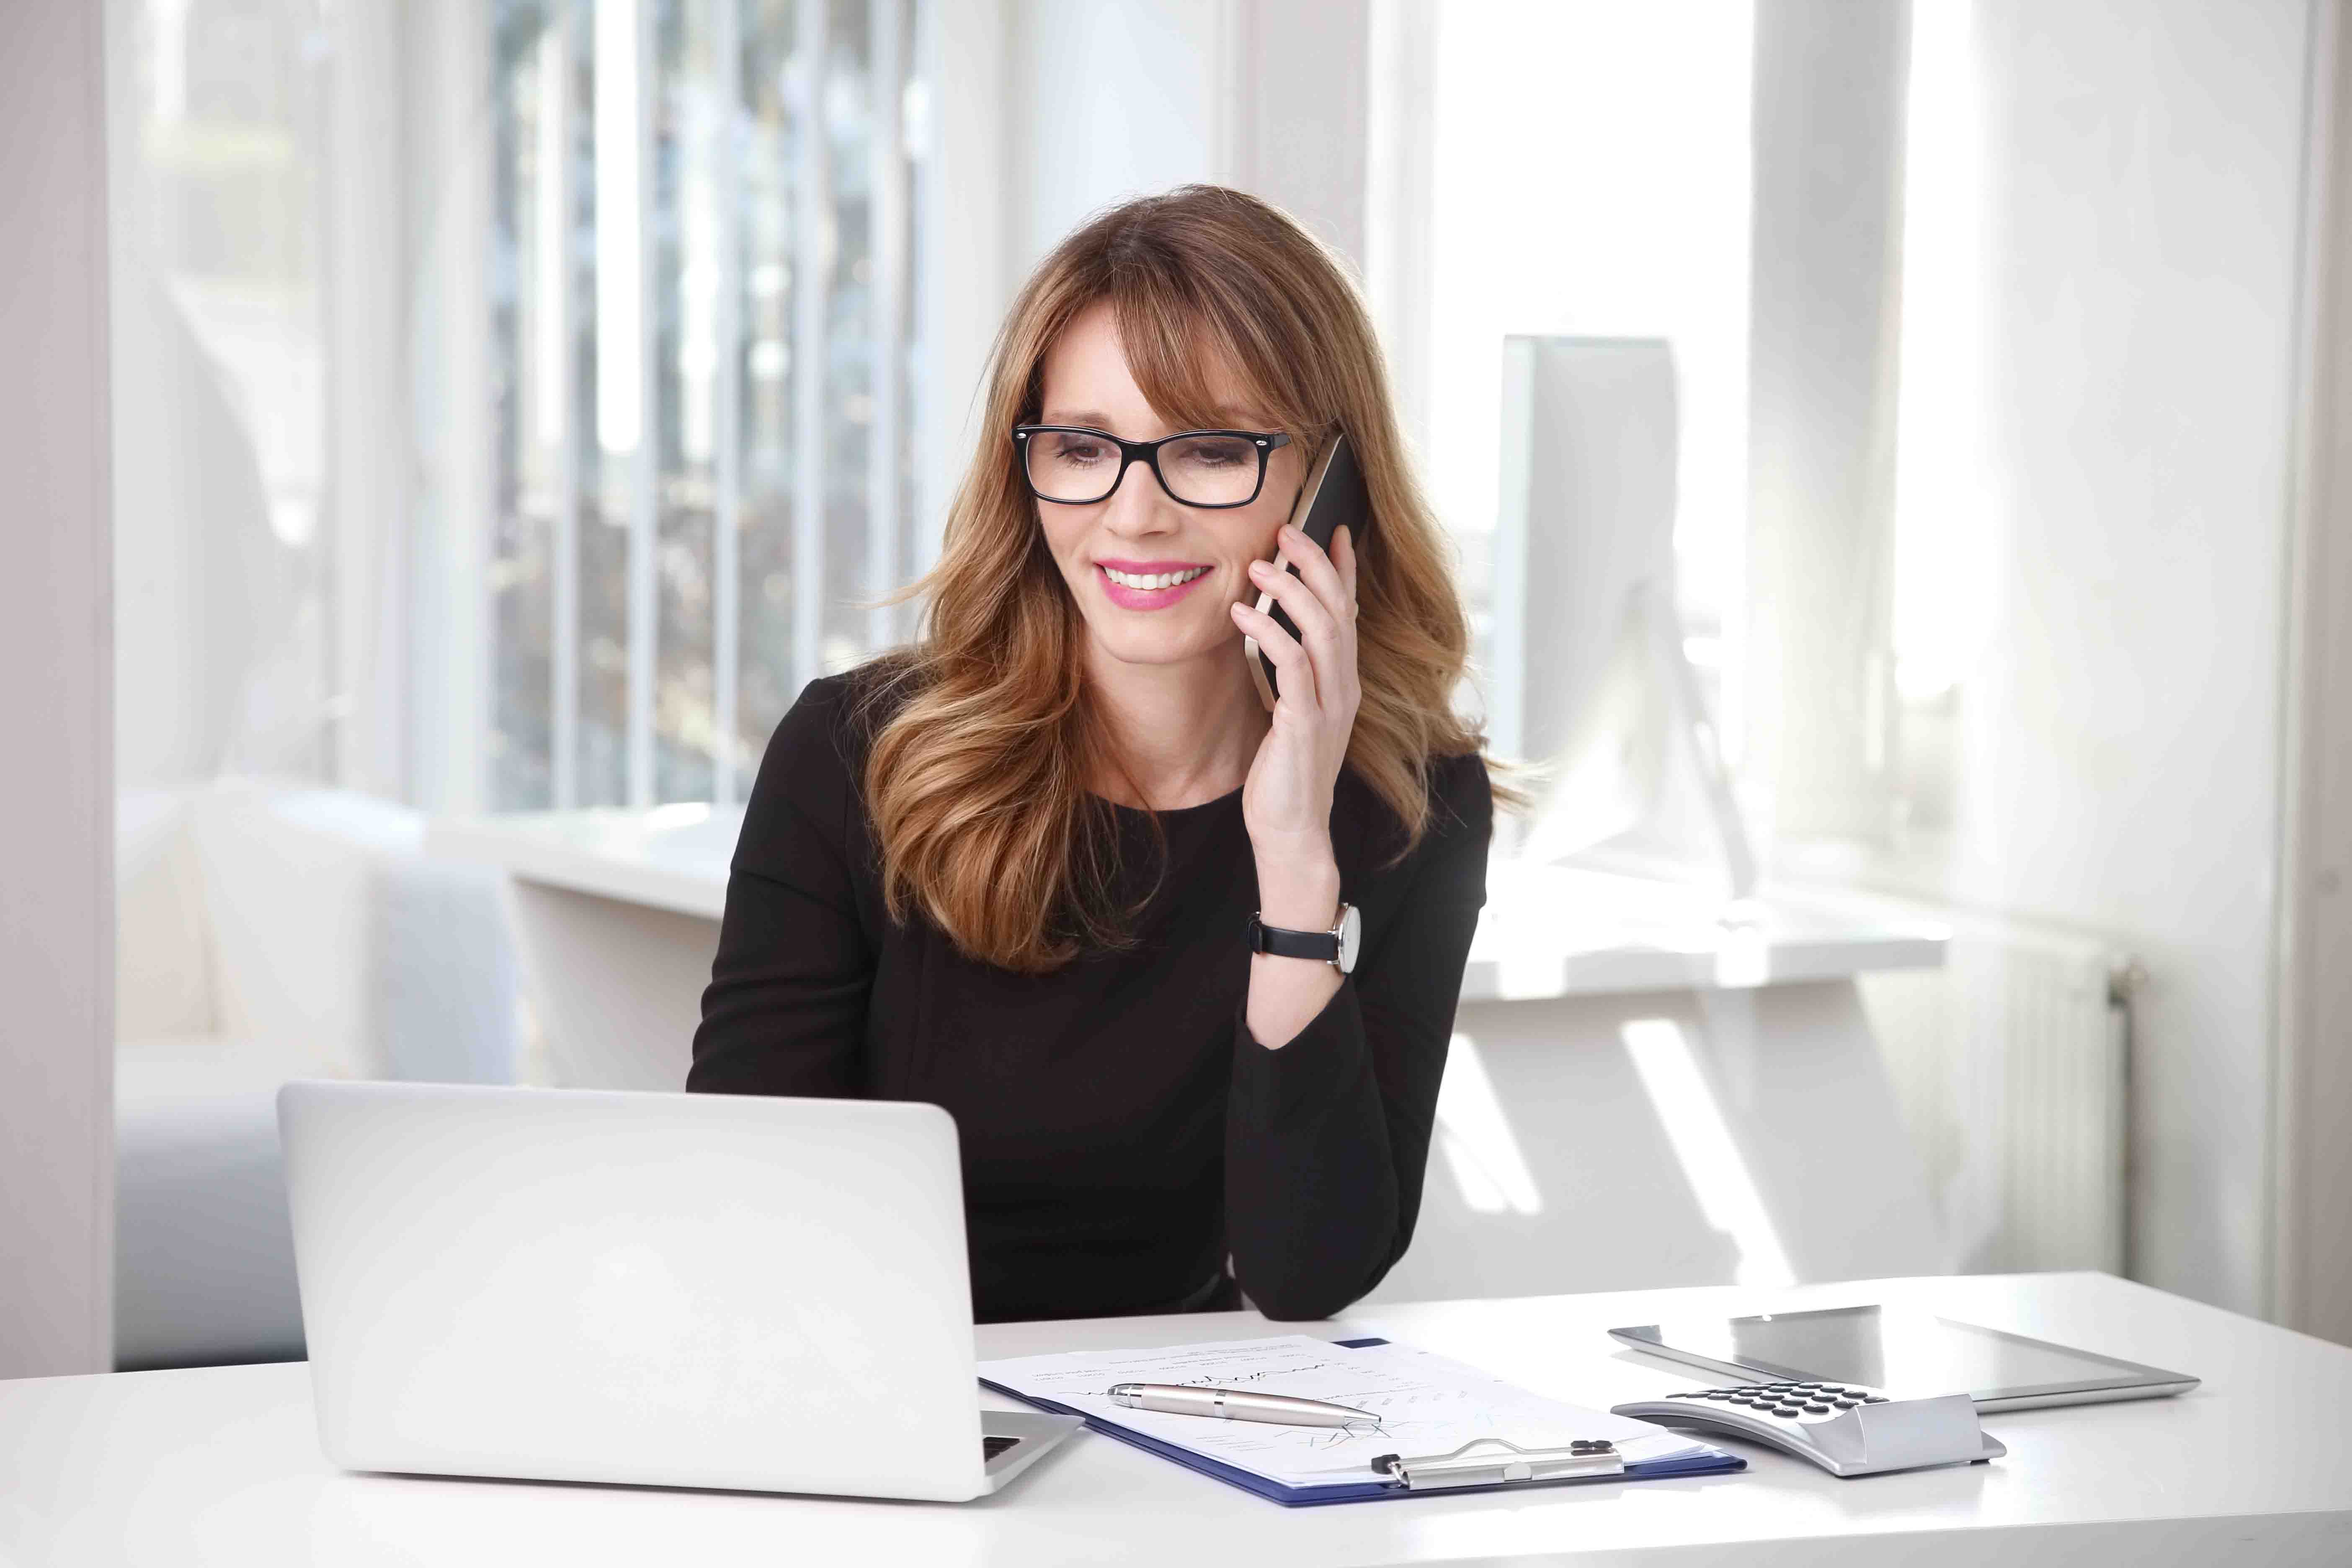 Carla Rieger Sm Work From Home Woman On Phone With Laptop